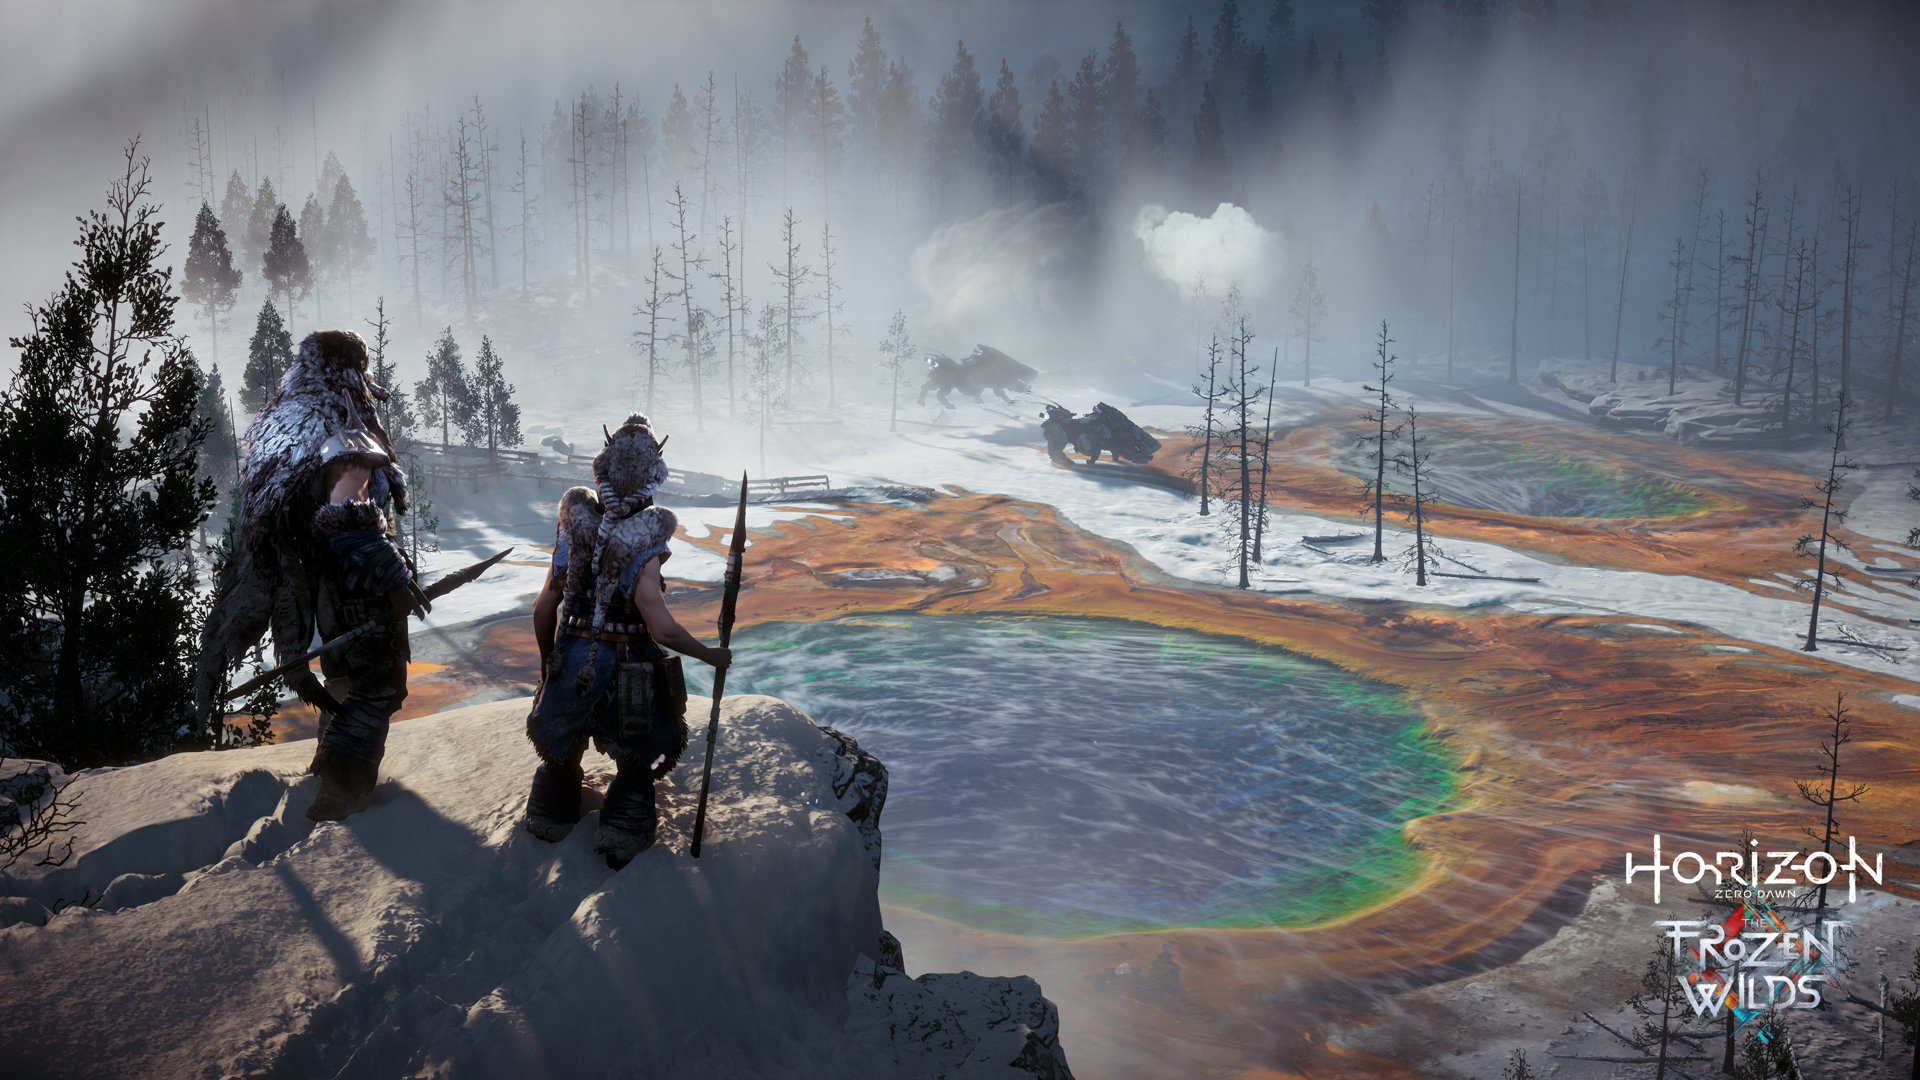 horizon-zero-dawn-the-frozen-wilds-screen-04-ps4-us-12jun17[1].jpg